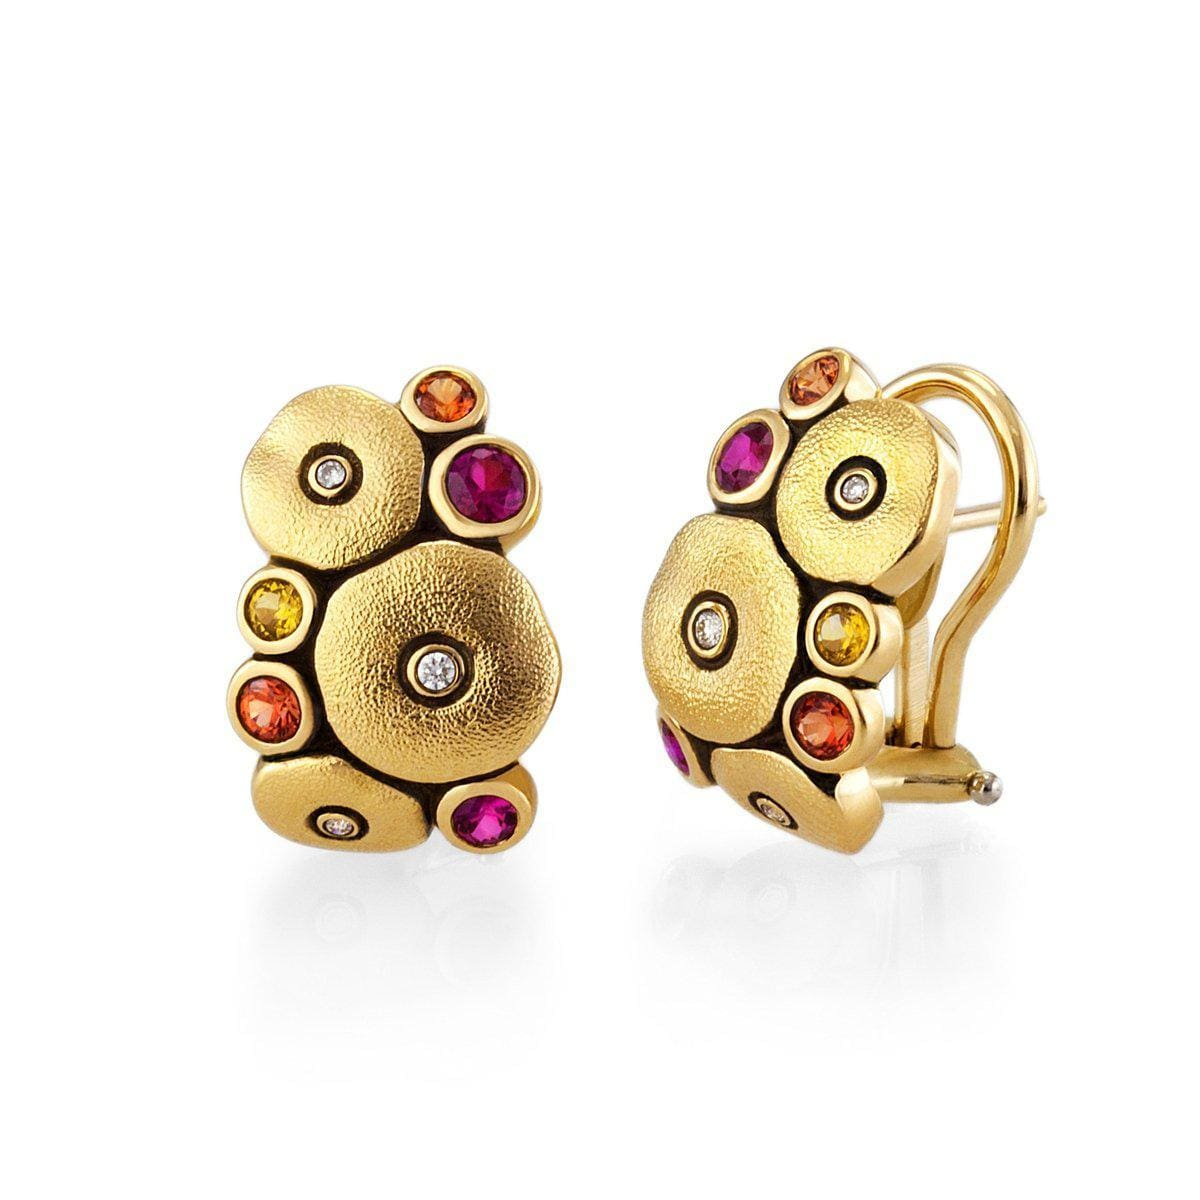 18K Orchard Orange Pink Mix Sapphire & Diamond Earrings - E-100S-Alex Sepkus-Renee Taylor Gallery